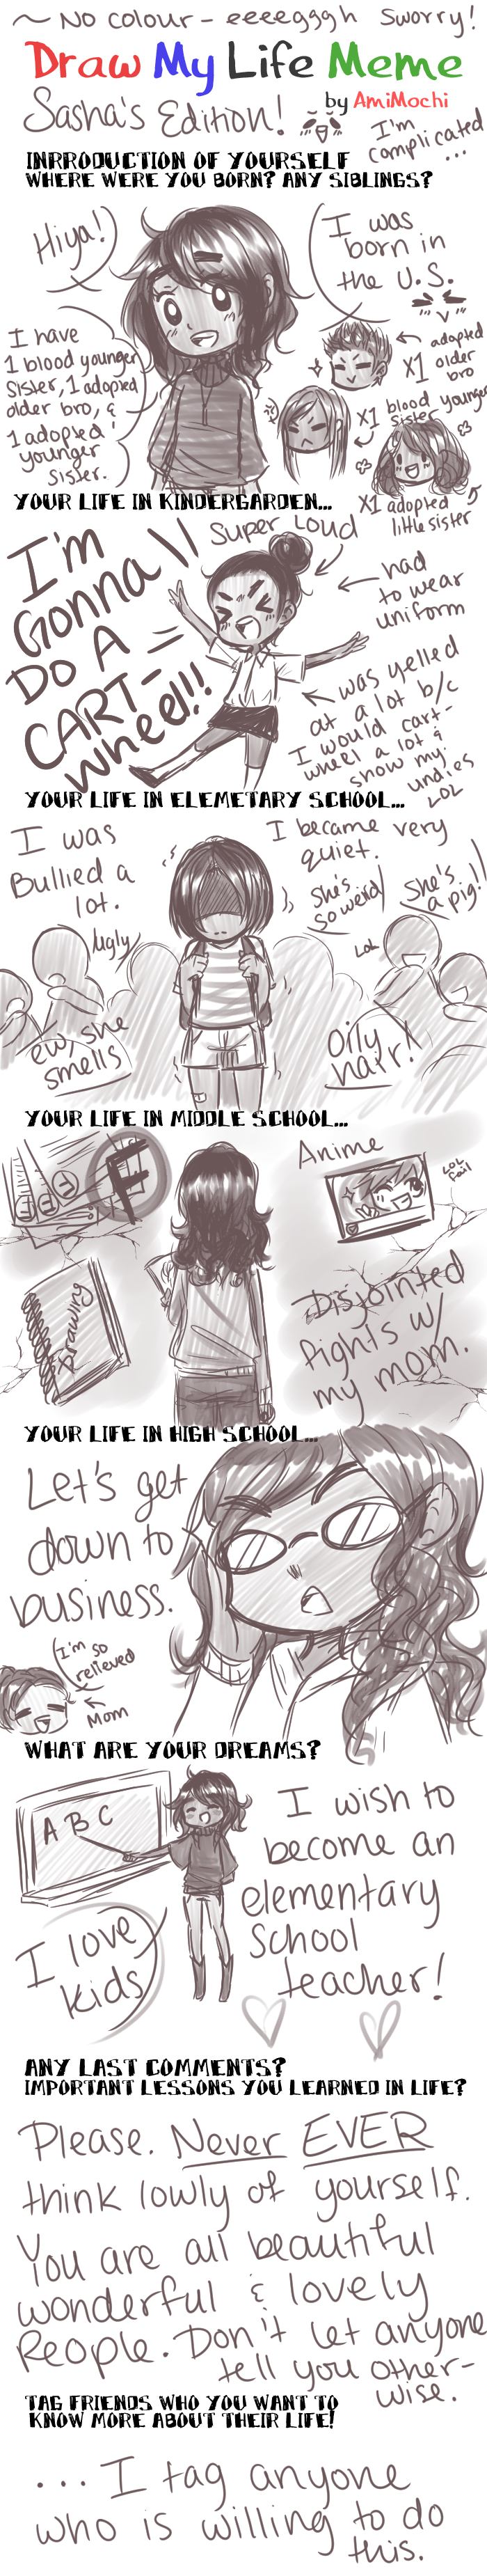 Draw My Life - SashaMinty Edition by Oriiole